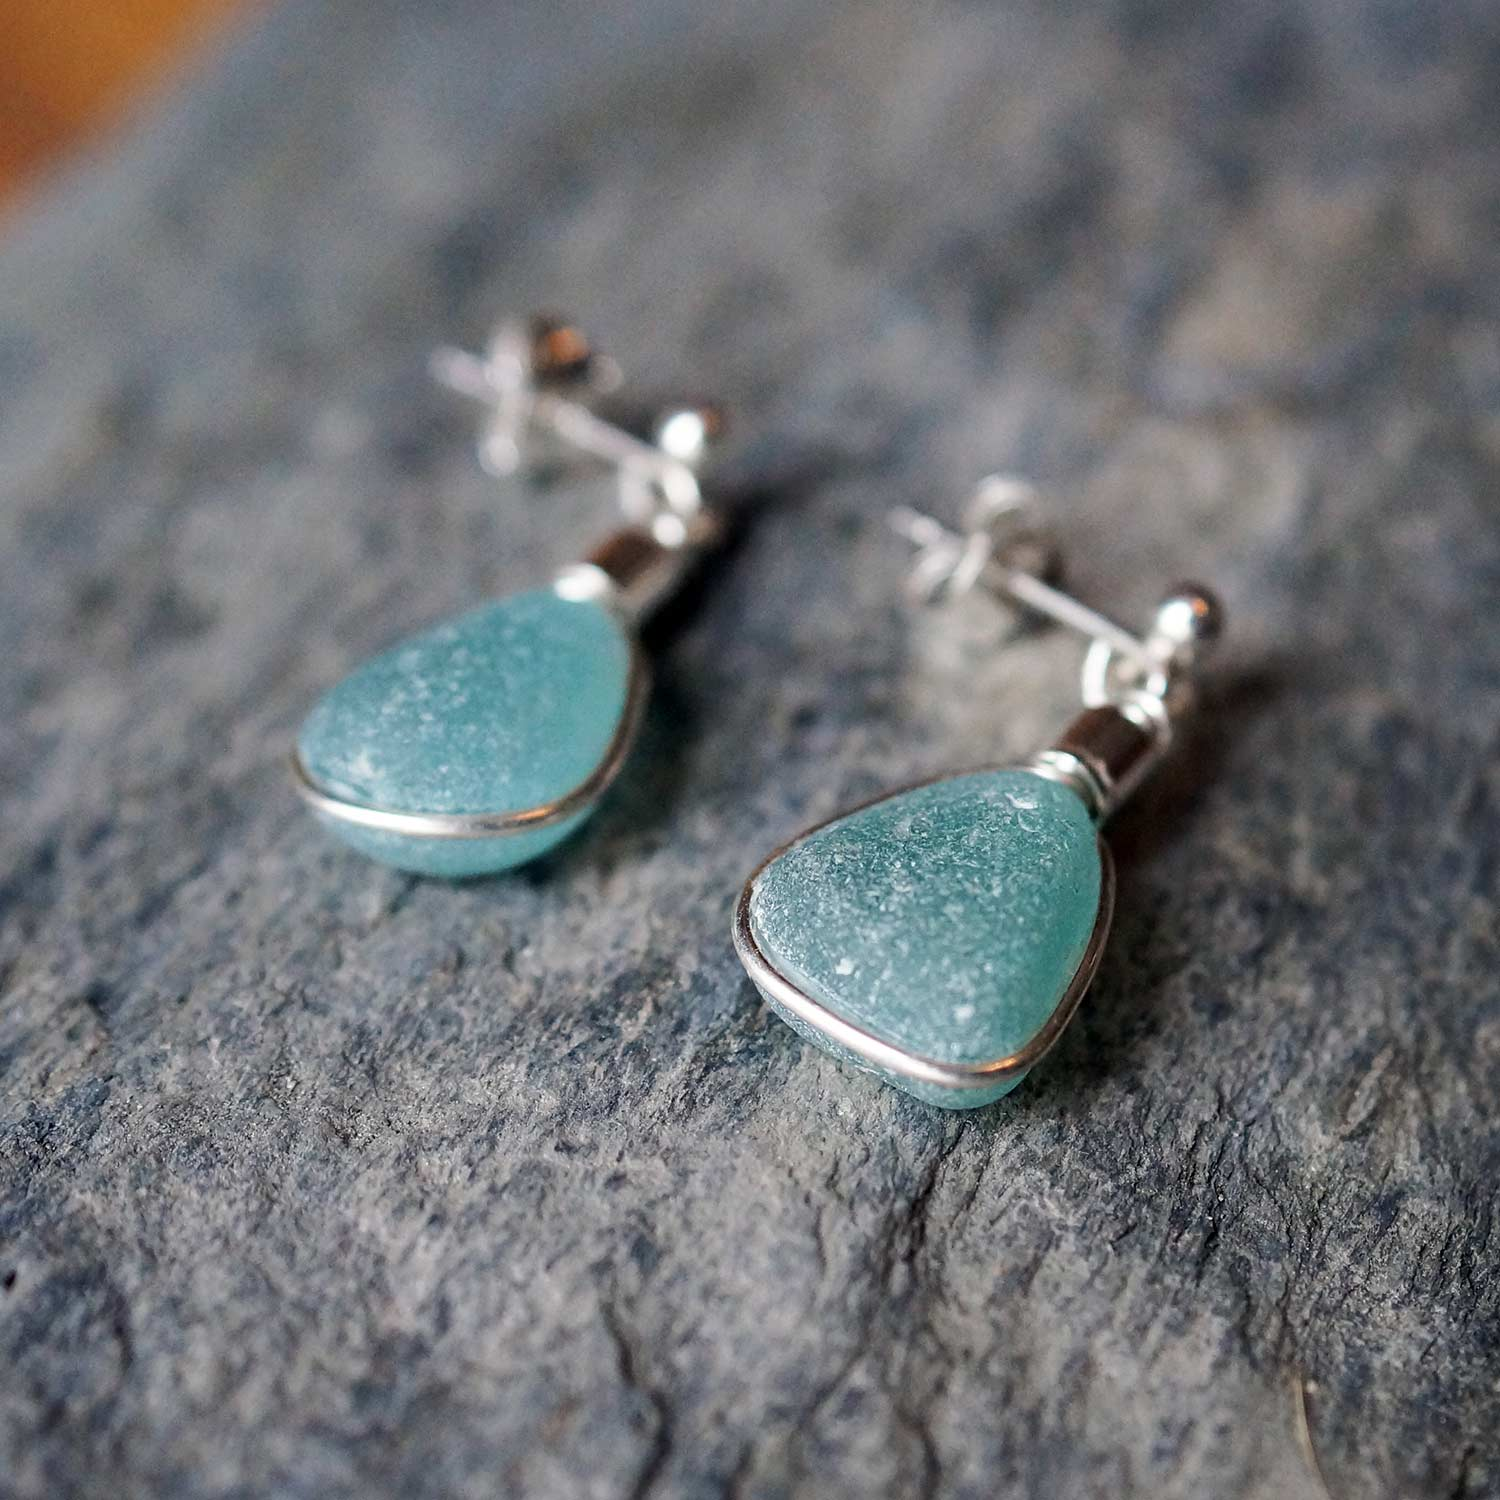 bright aqua turquoise Sea glass stud earrings sterling silver rare one of a kind individual handmade cornish cornwall beach sea recycled natural sustainable newquay beachcomb surfing mermaid